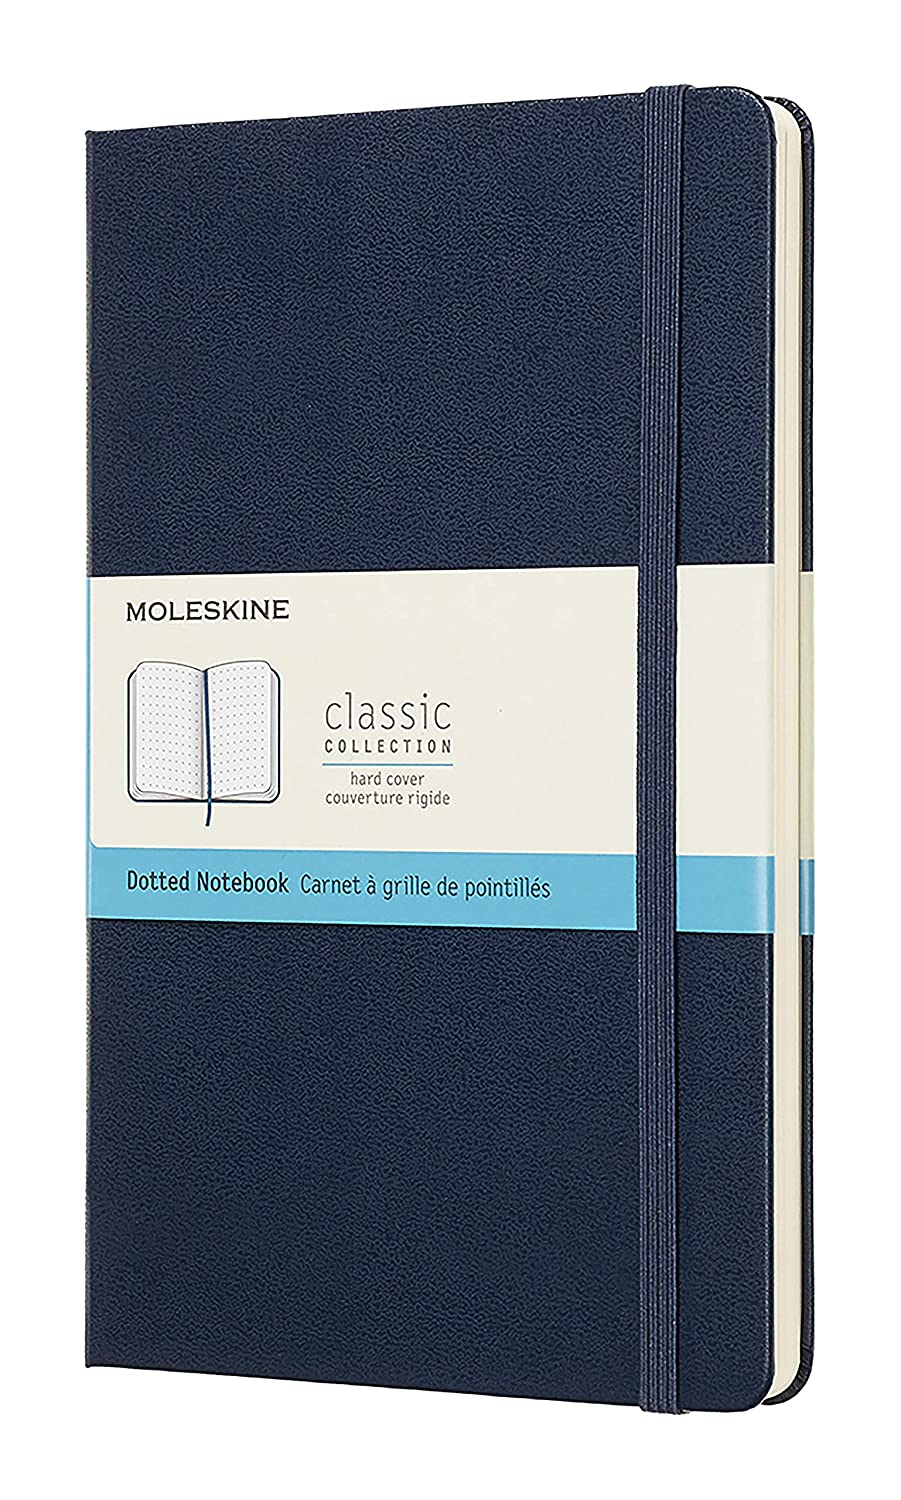 Moleskine Classic Notebook, Hard Cover, Large, Dotted